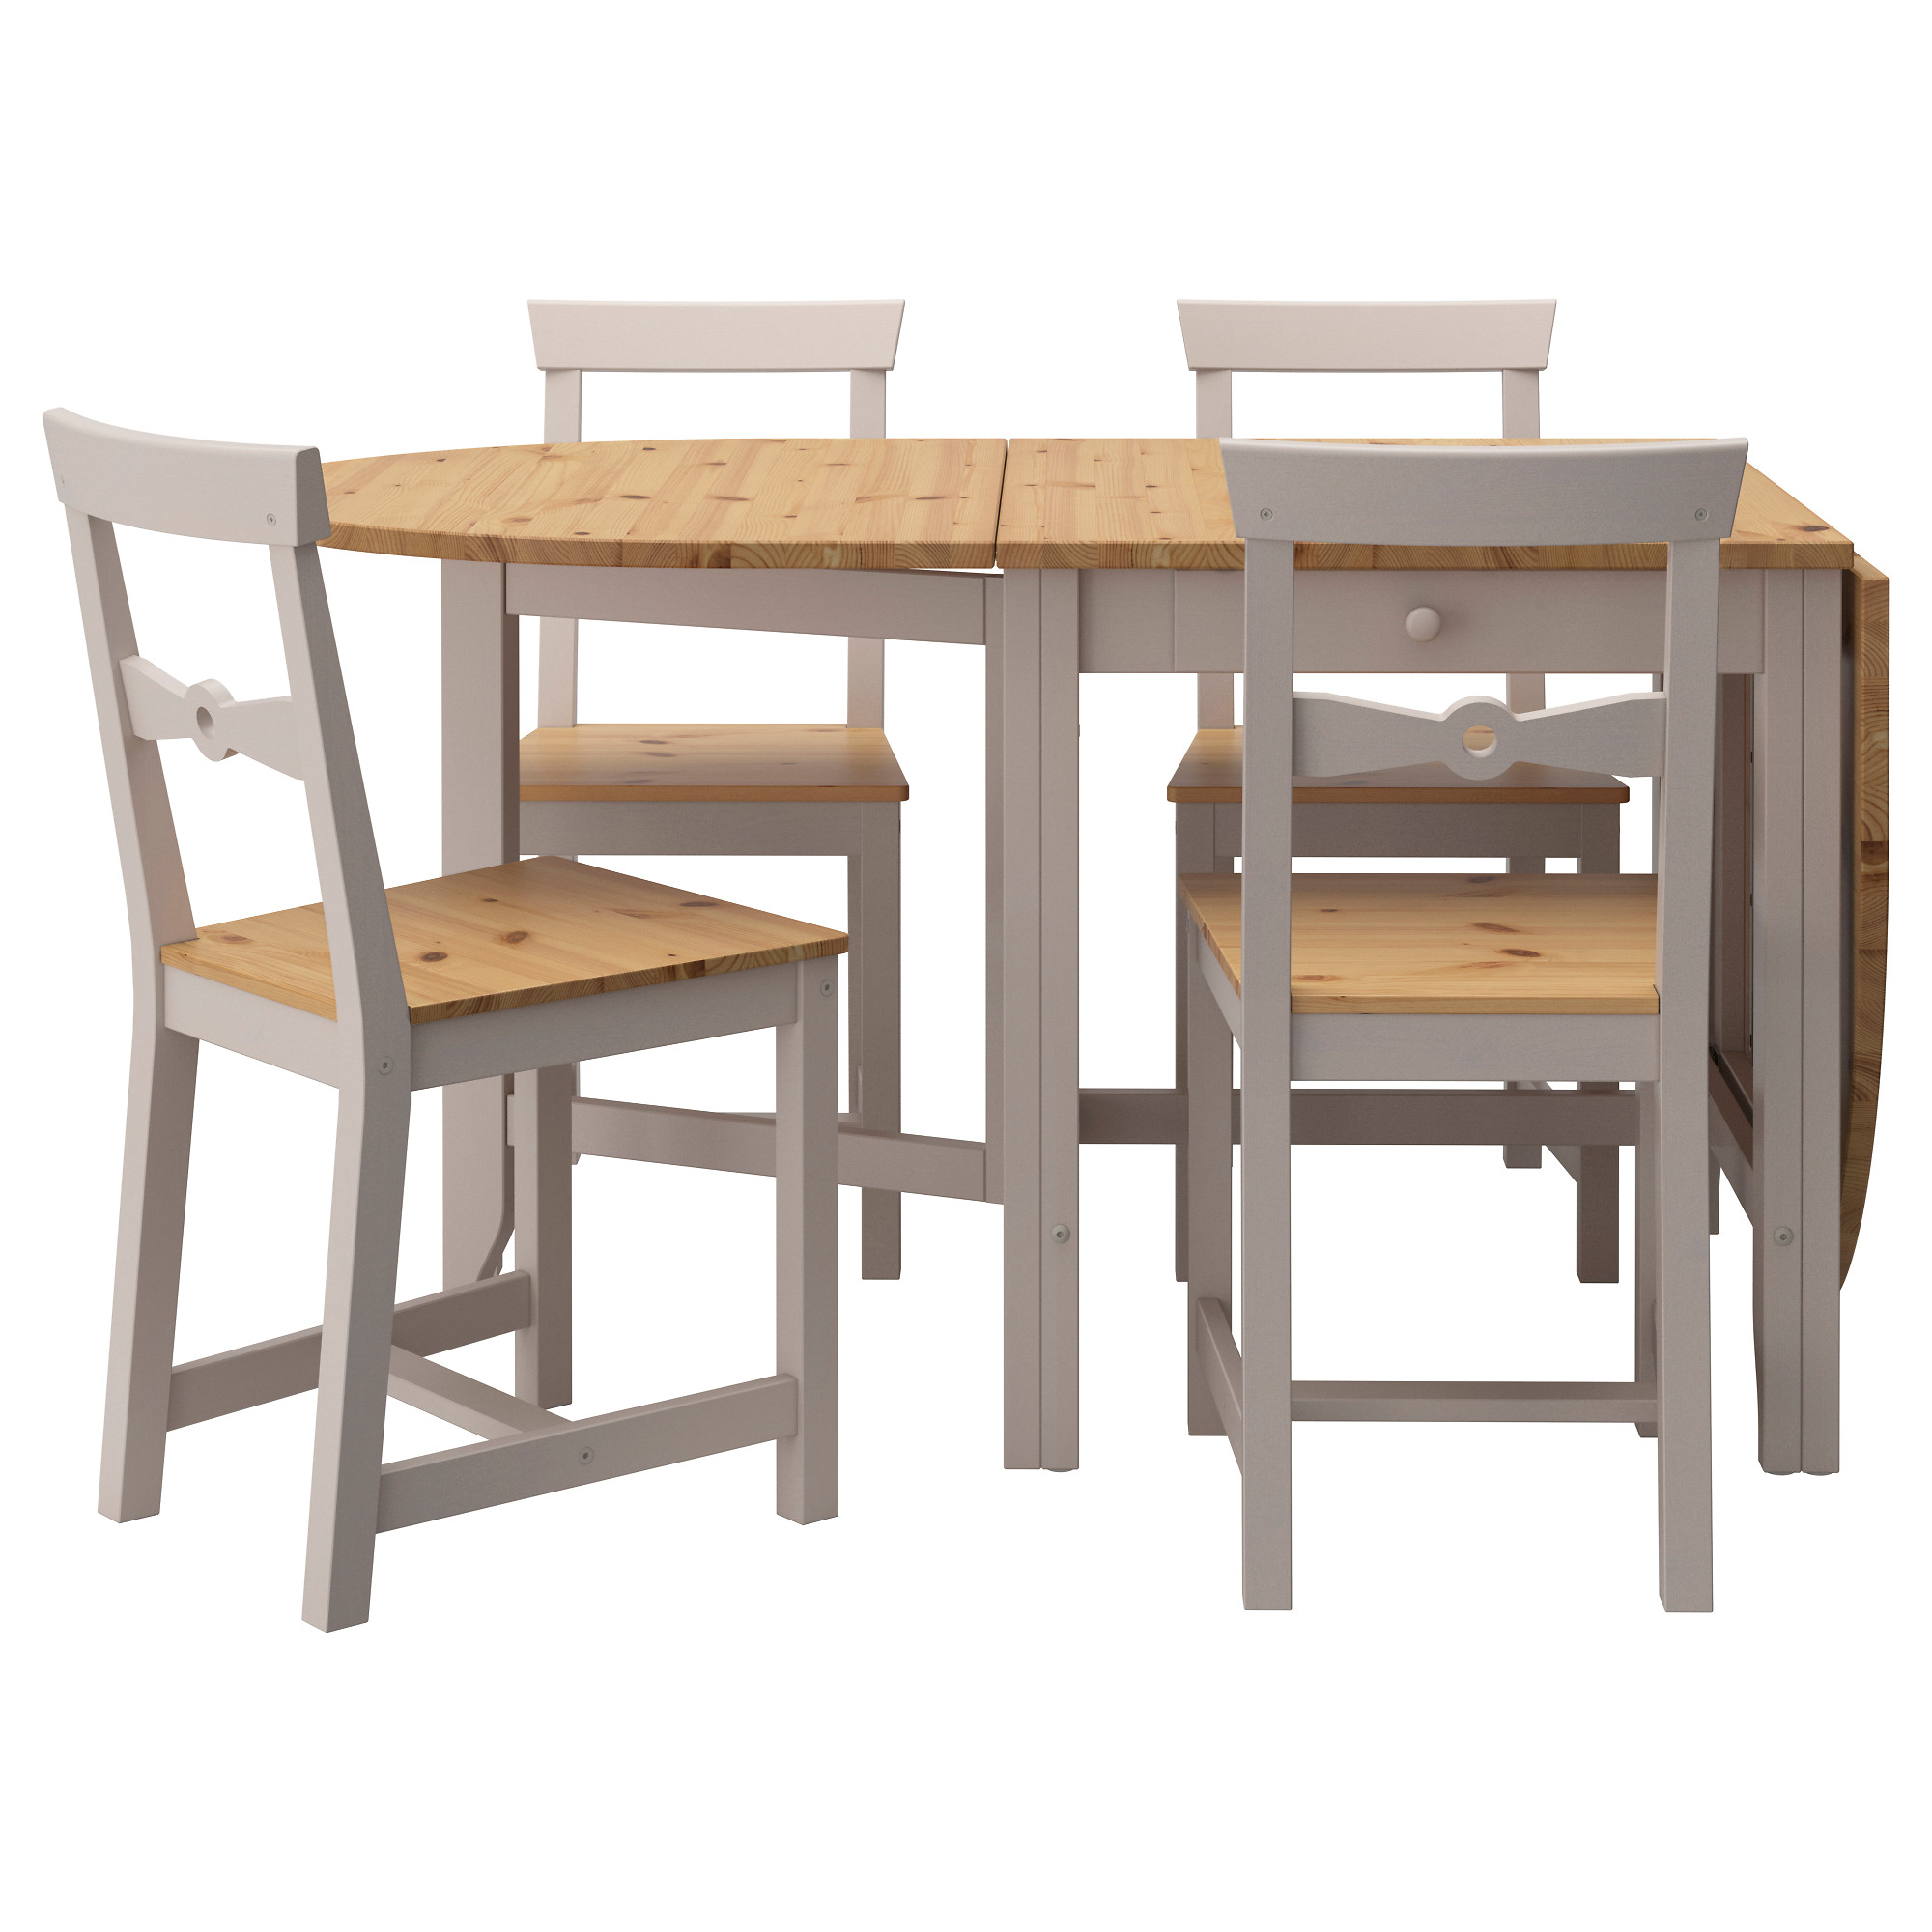 Ikea Dining Table Set Black Suitable With Ikea Dining Room Table Commercial Good Ideas For Ikea Dining Room Sets Inspiration Home Magazine